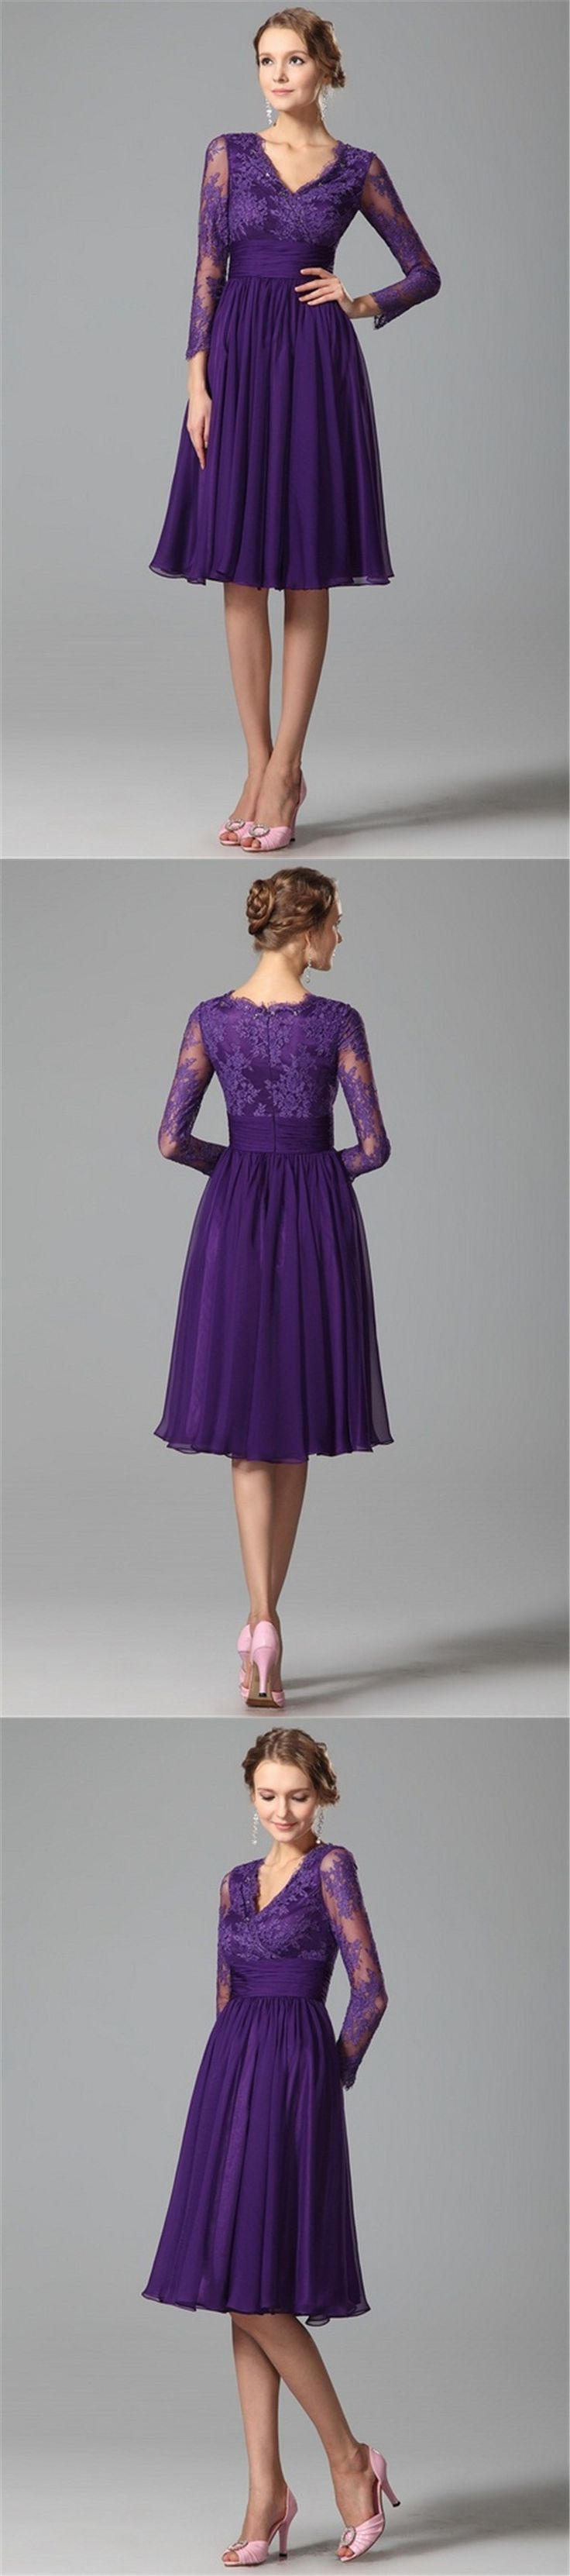 Purple bridesmaid dresses 2016 lace 3 4 long sleeves v for Cheap formal dresses for wedding guests